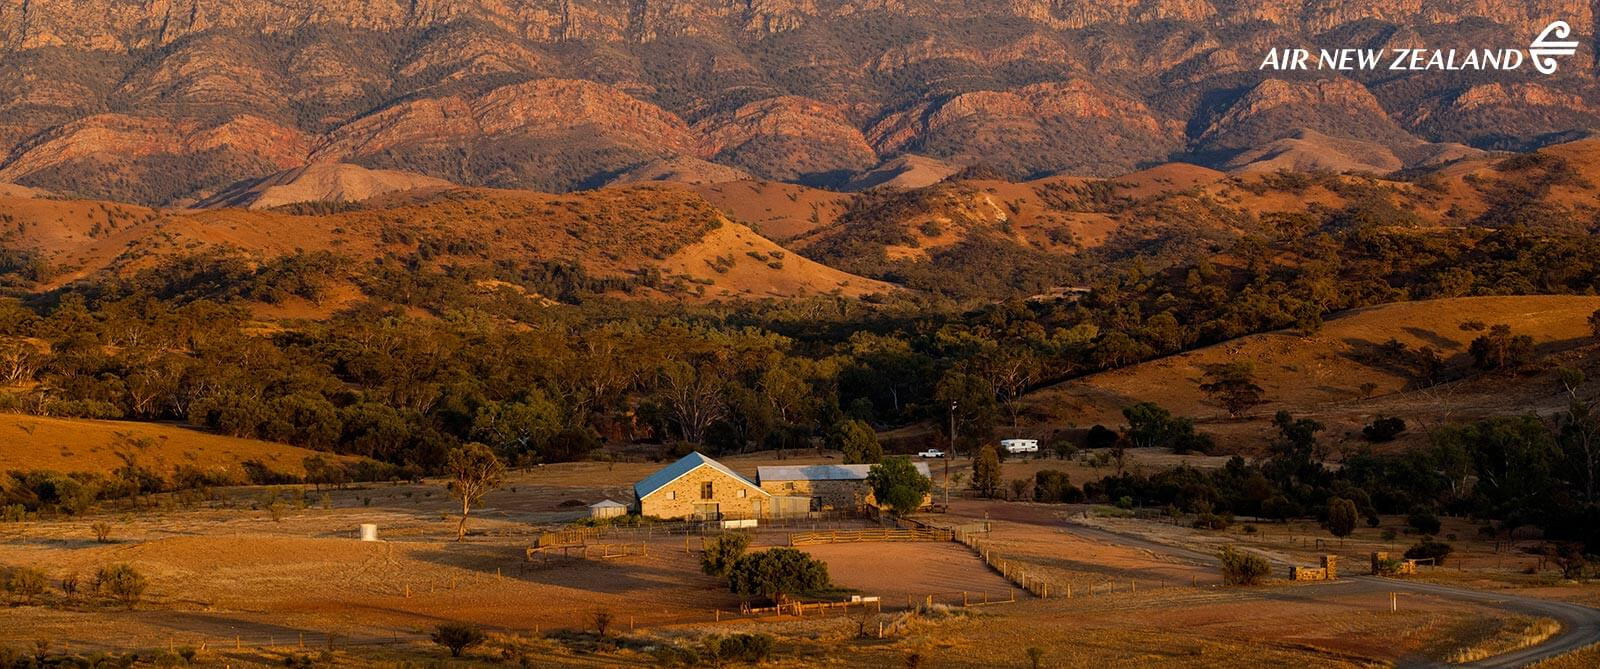 Arkaba Station, Australian Outback - Australian Wildlife, Wine, and Outback Adventure